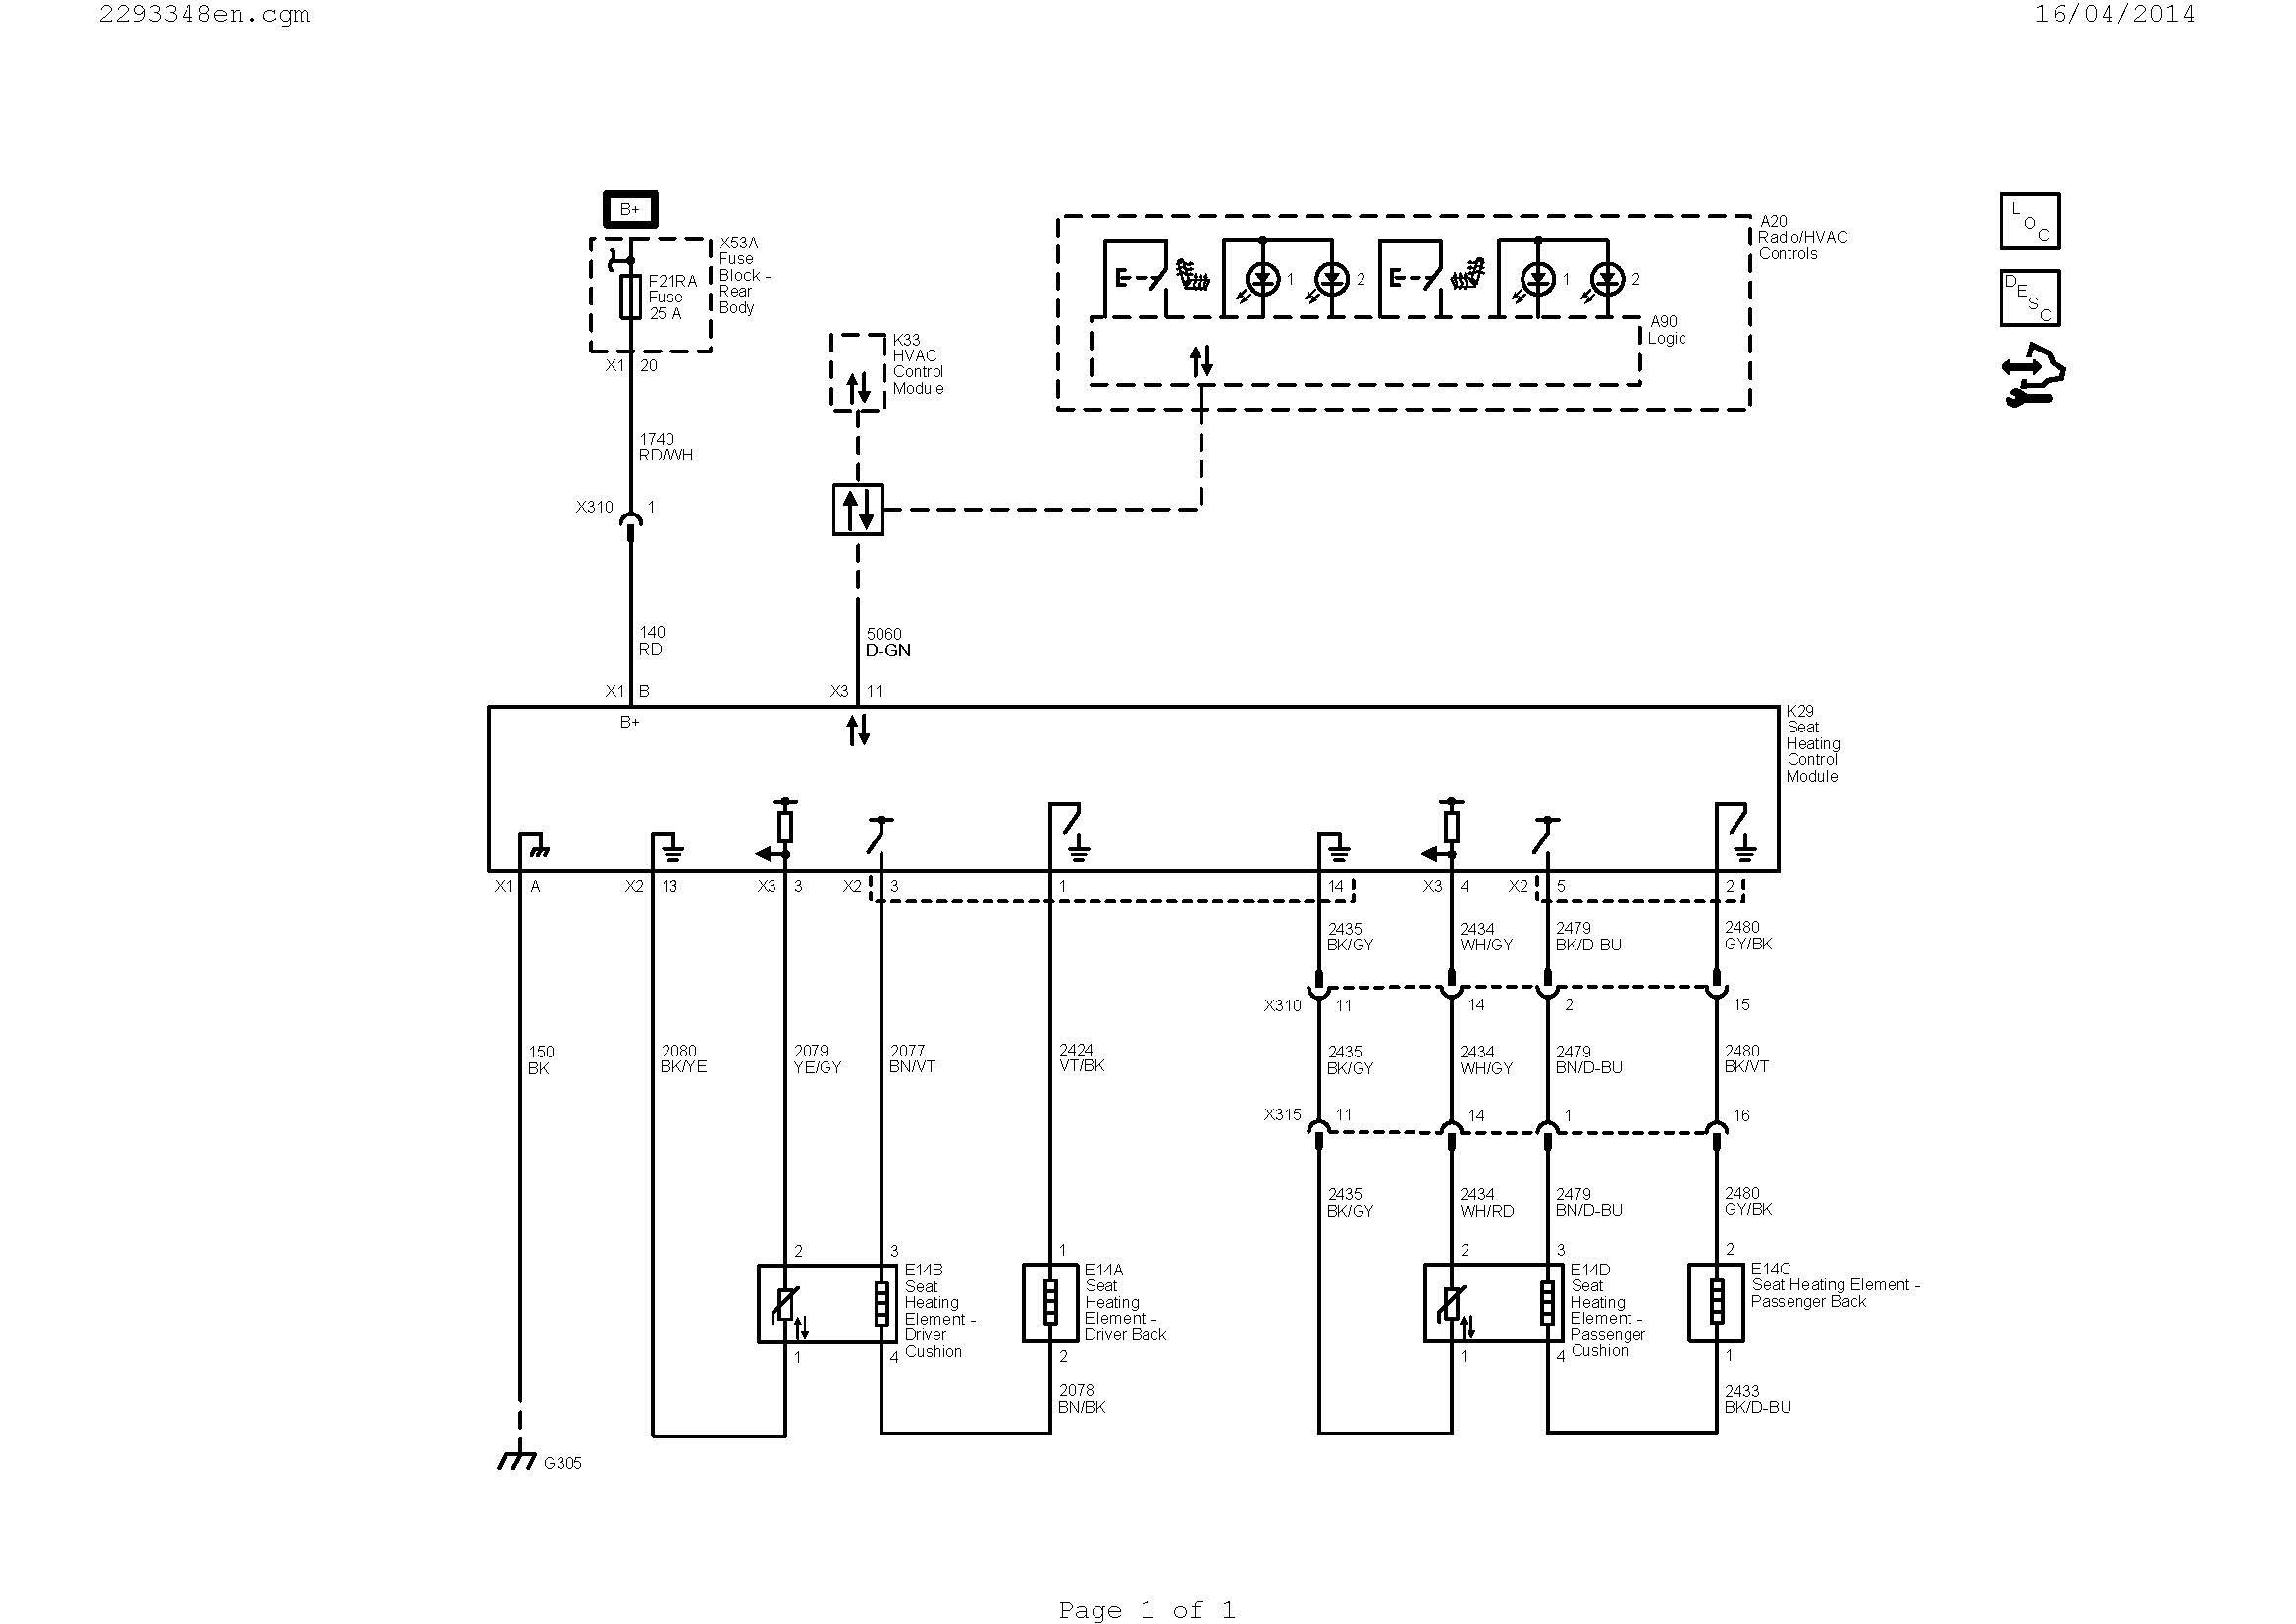 white rodgers relay wiring diagram Collection-Control Relay Wiring Diagram Collection White Rodgers 50e47 843 Wiring Diagram Image 6-p